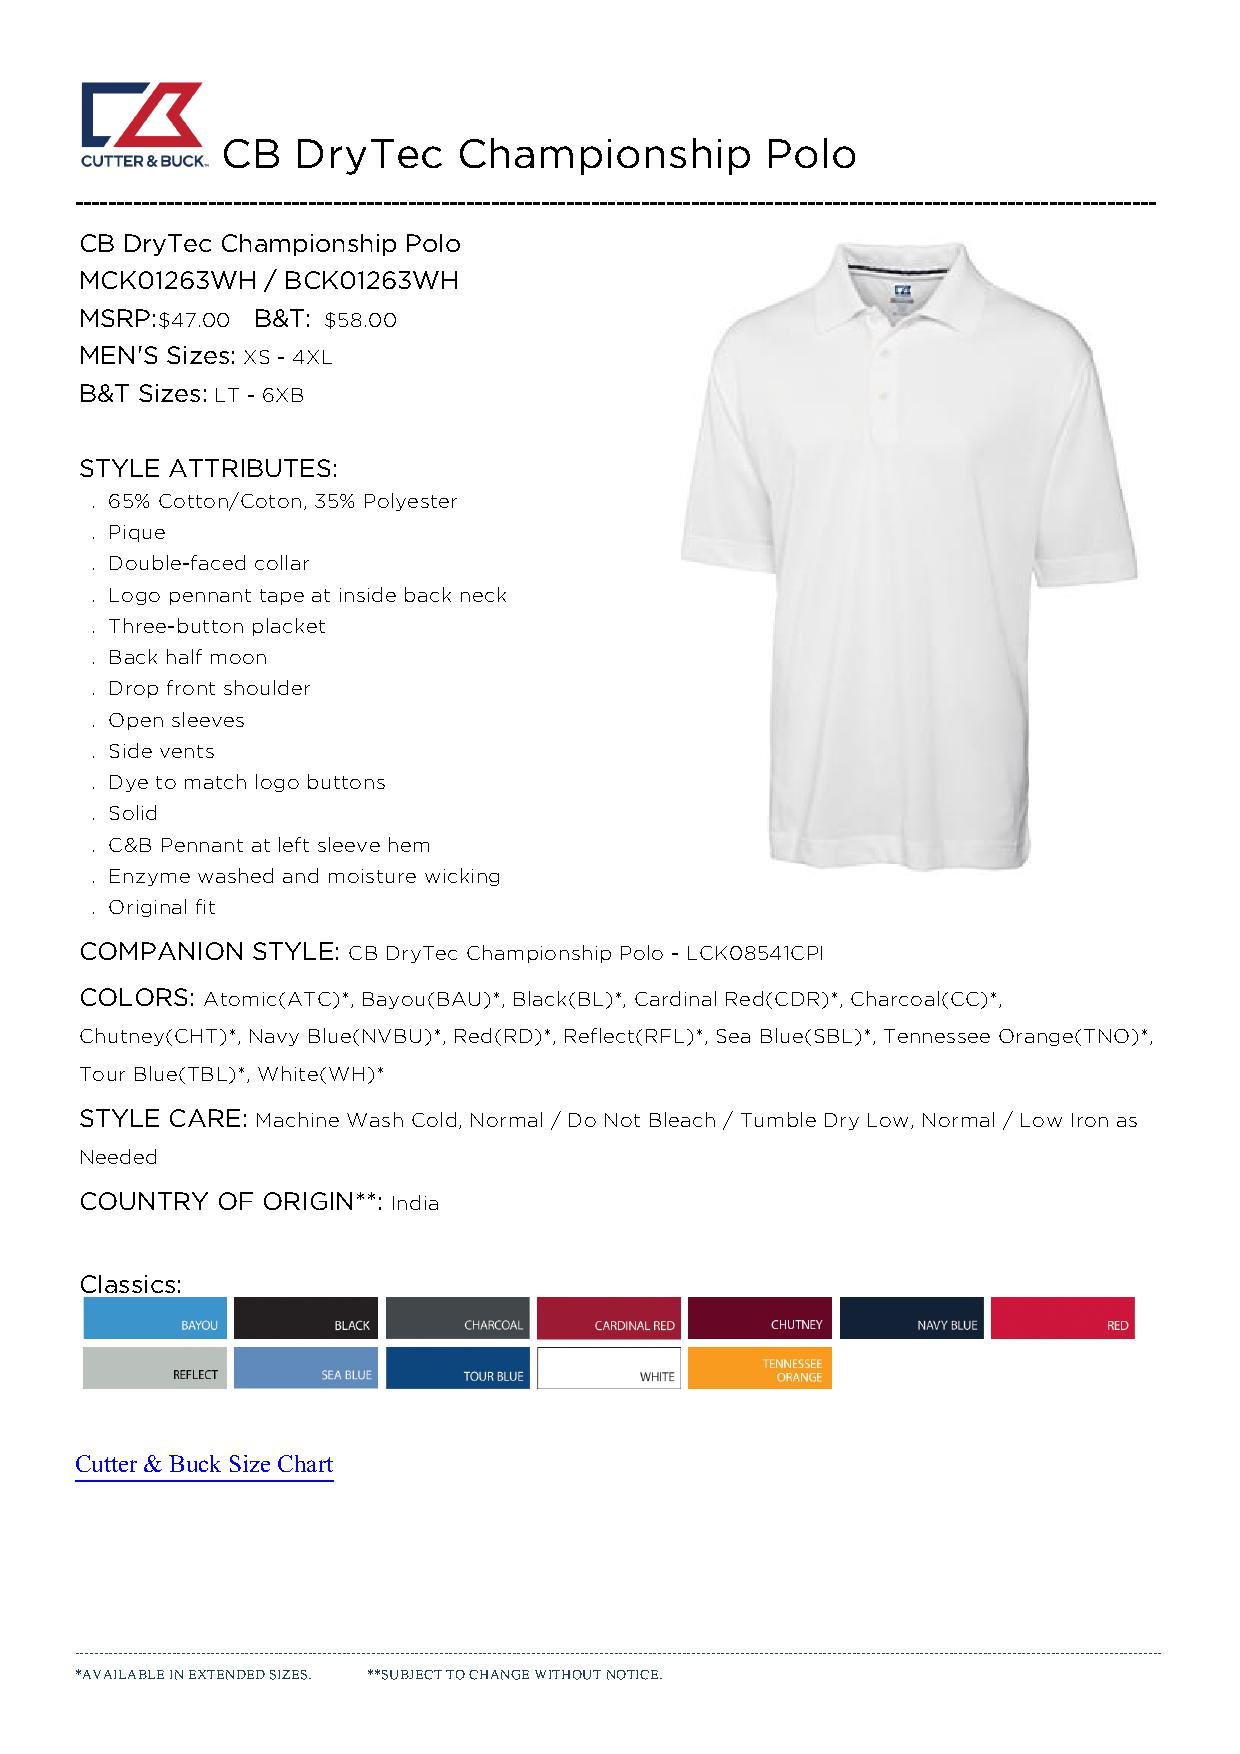 Cutter buck mck01263 men 39 s cb drytec championship polo for Cutter buck polo shirt size chart